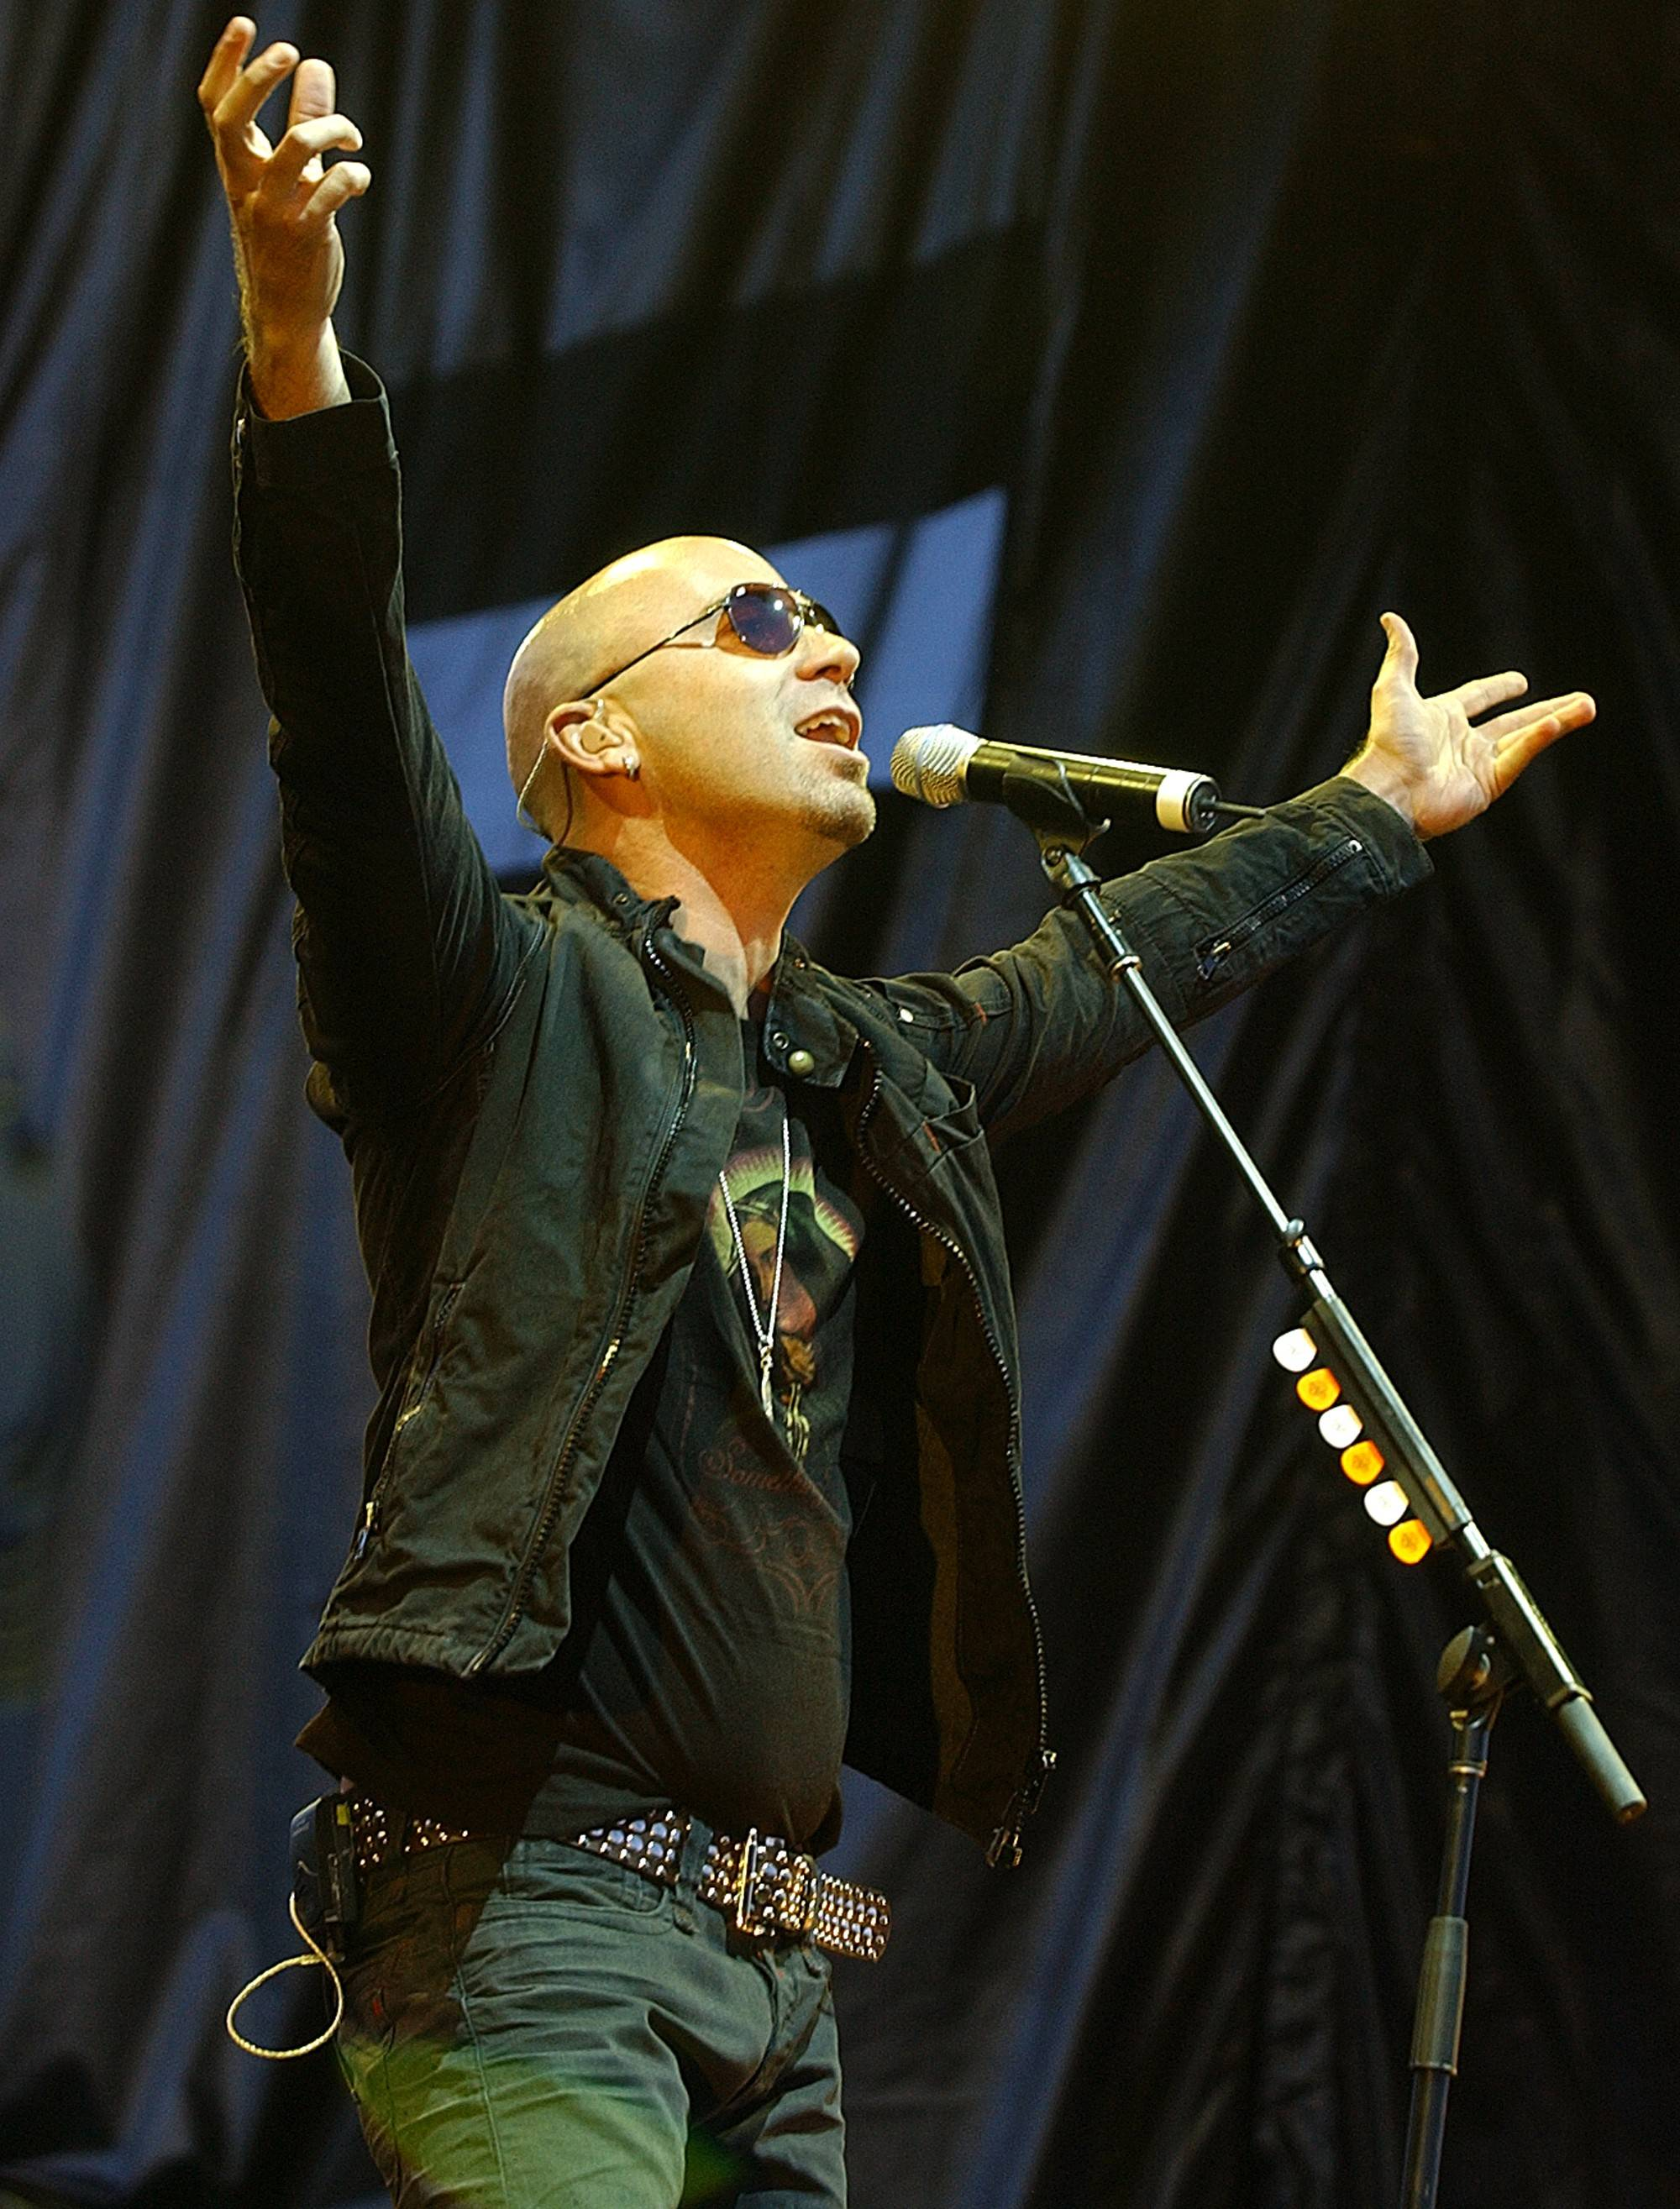 Ed Kowalczyk, former lead singer of the band LIVE, will perform at 6 p.m. Saturday, Sept. 5, at the Last Fling festival in Naperville.